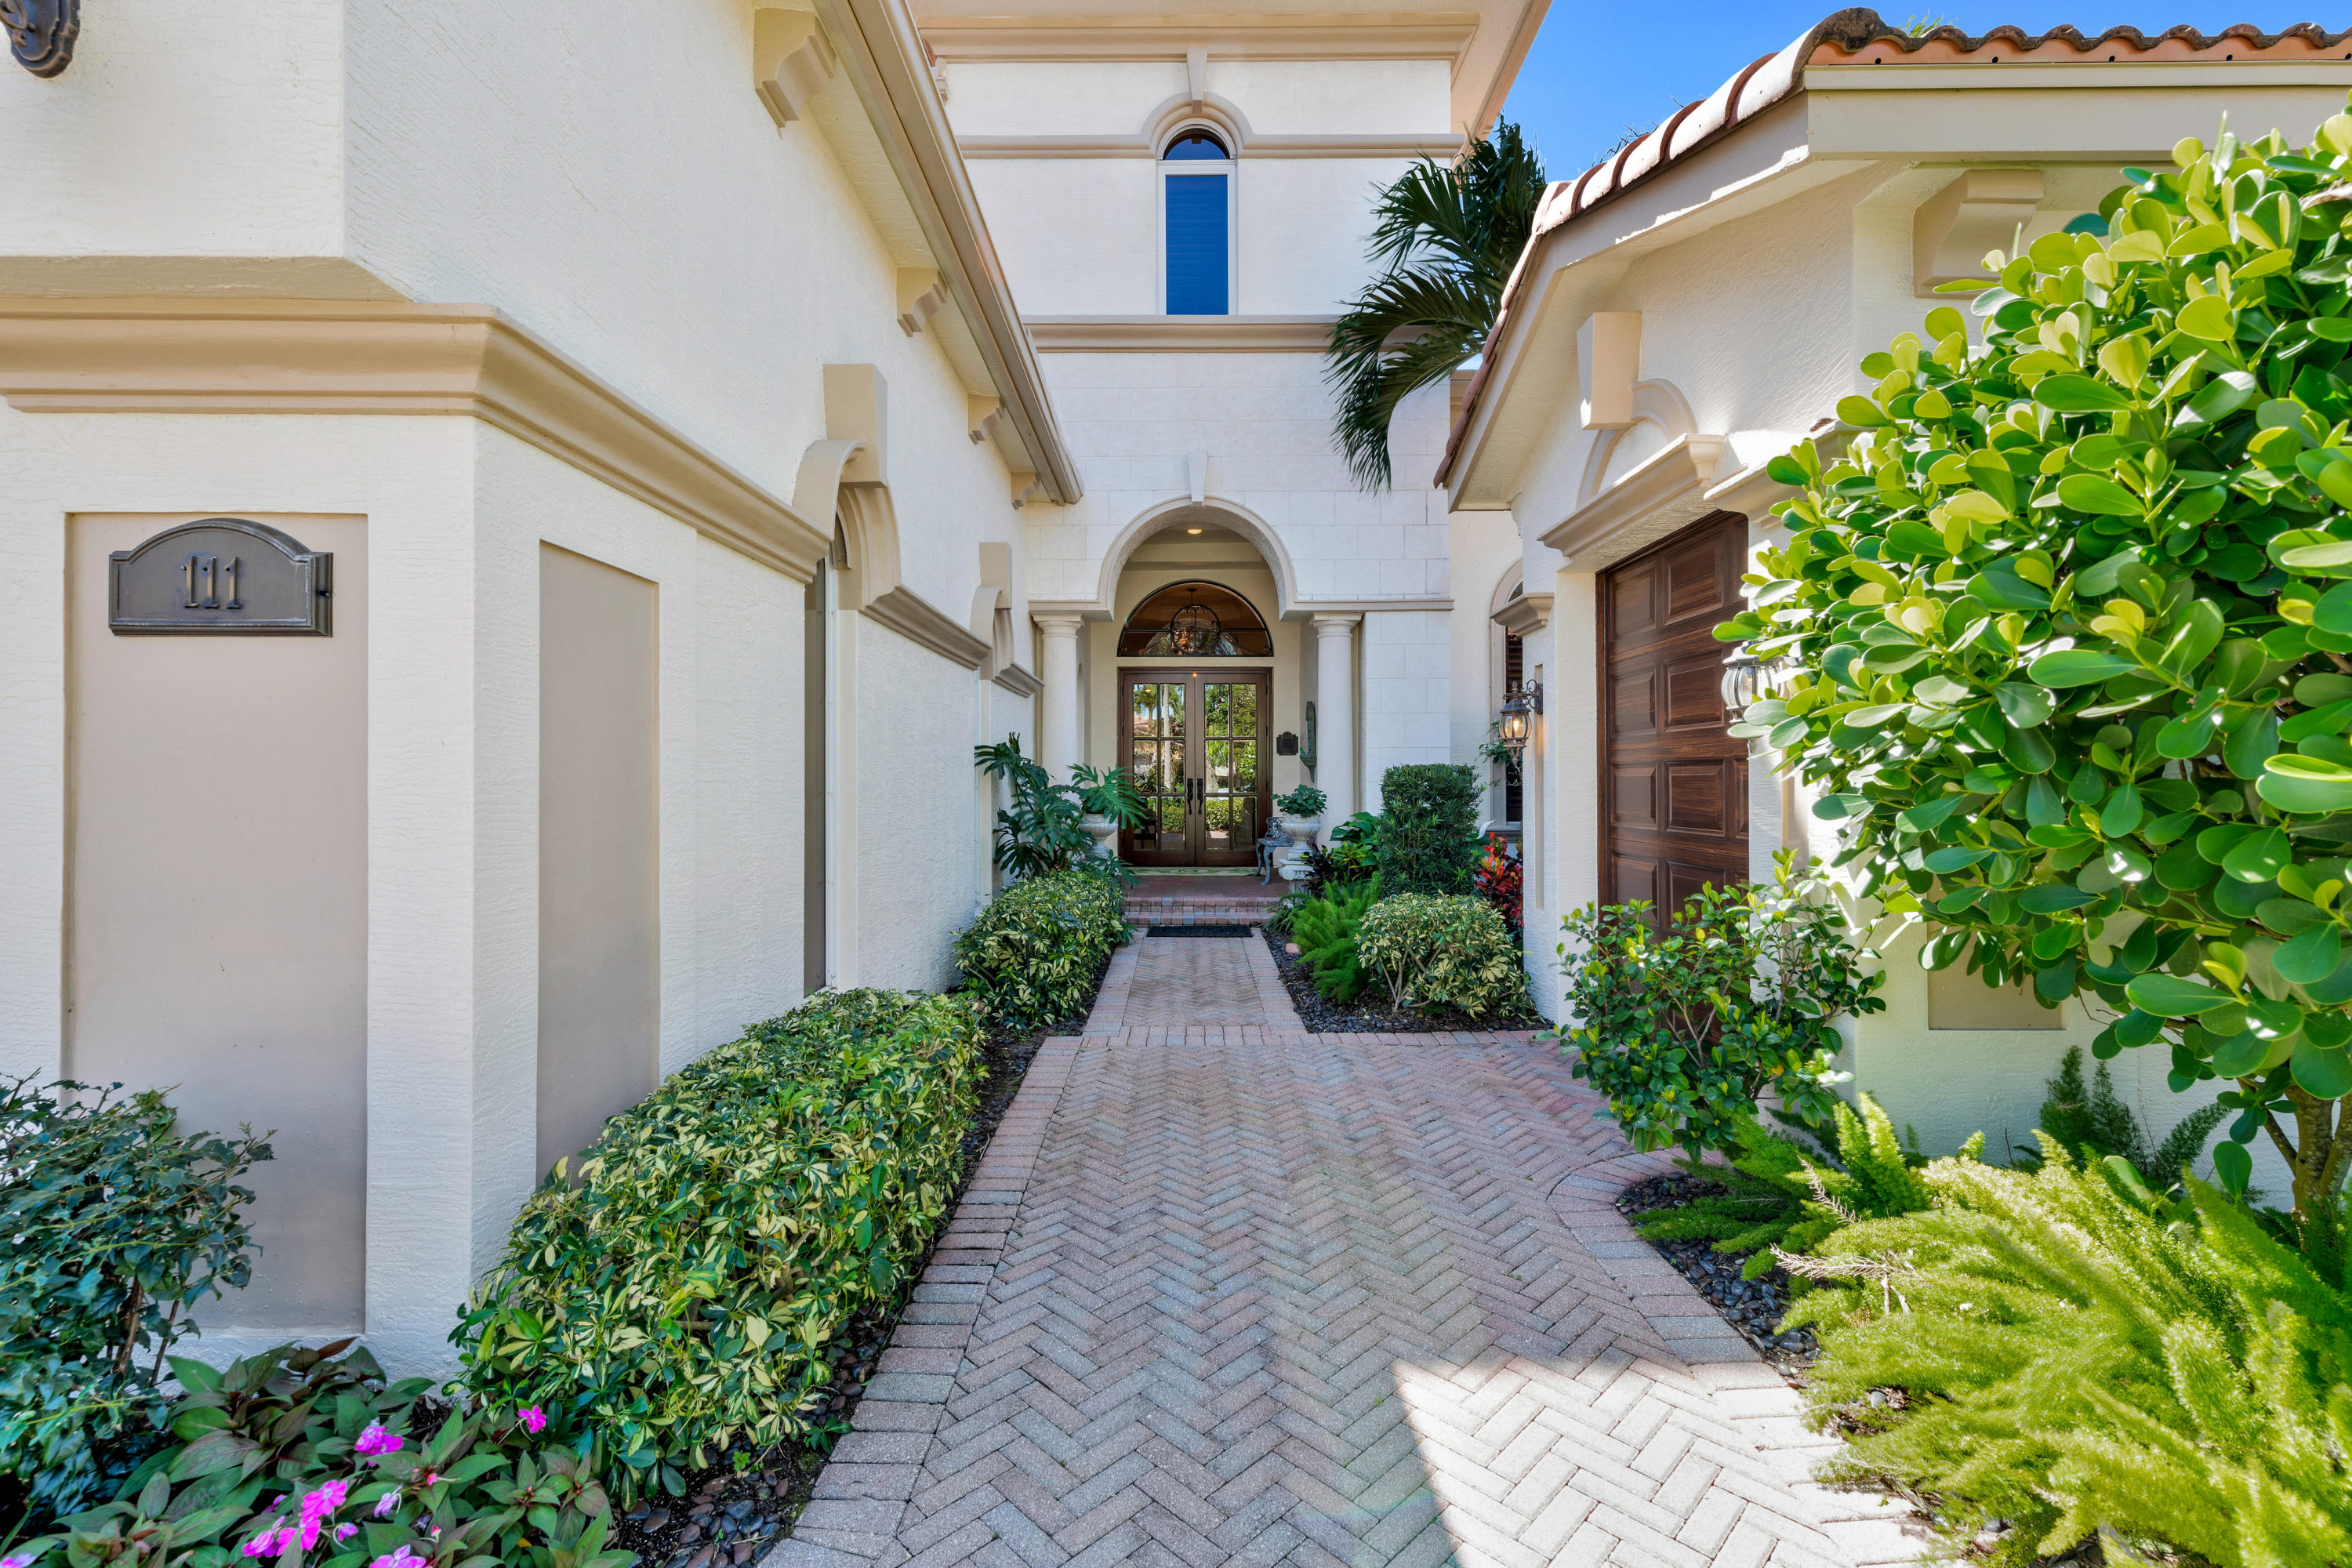 Property for sale at 111 Viera Drive Unit:, Palm Beach Gardens,  Florida 33418